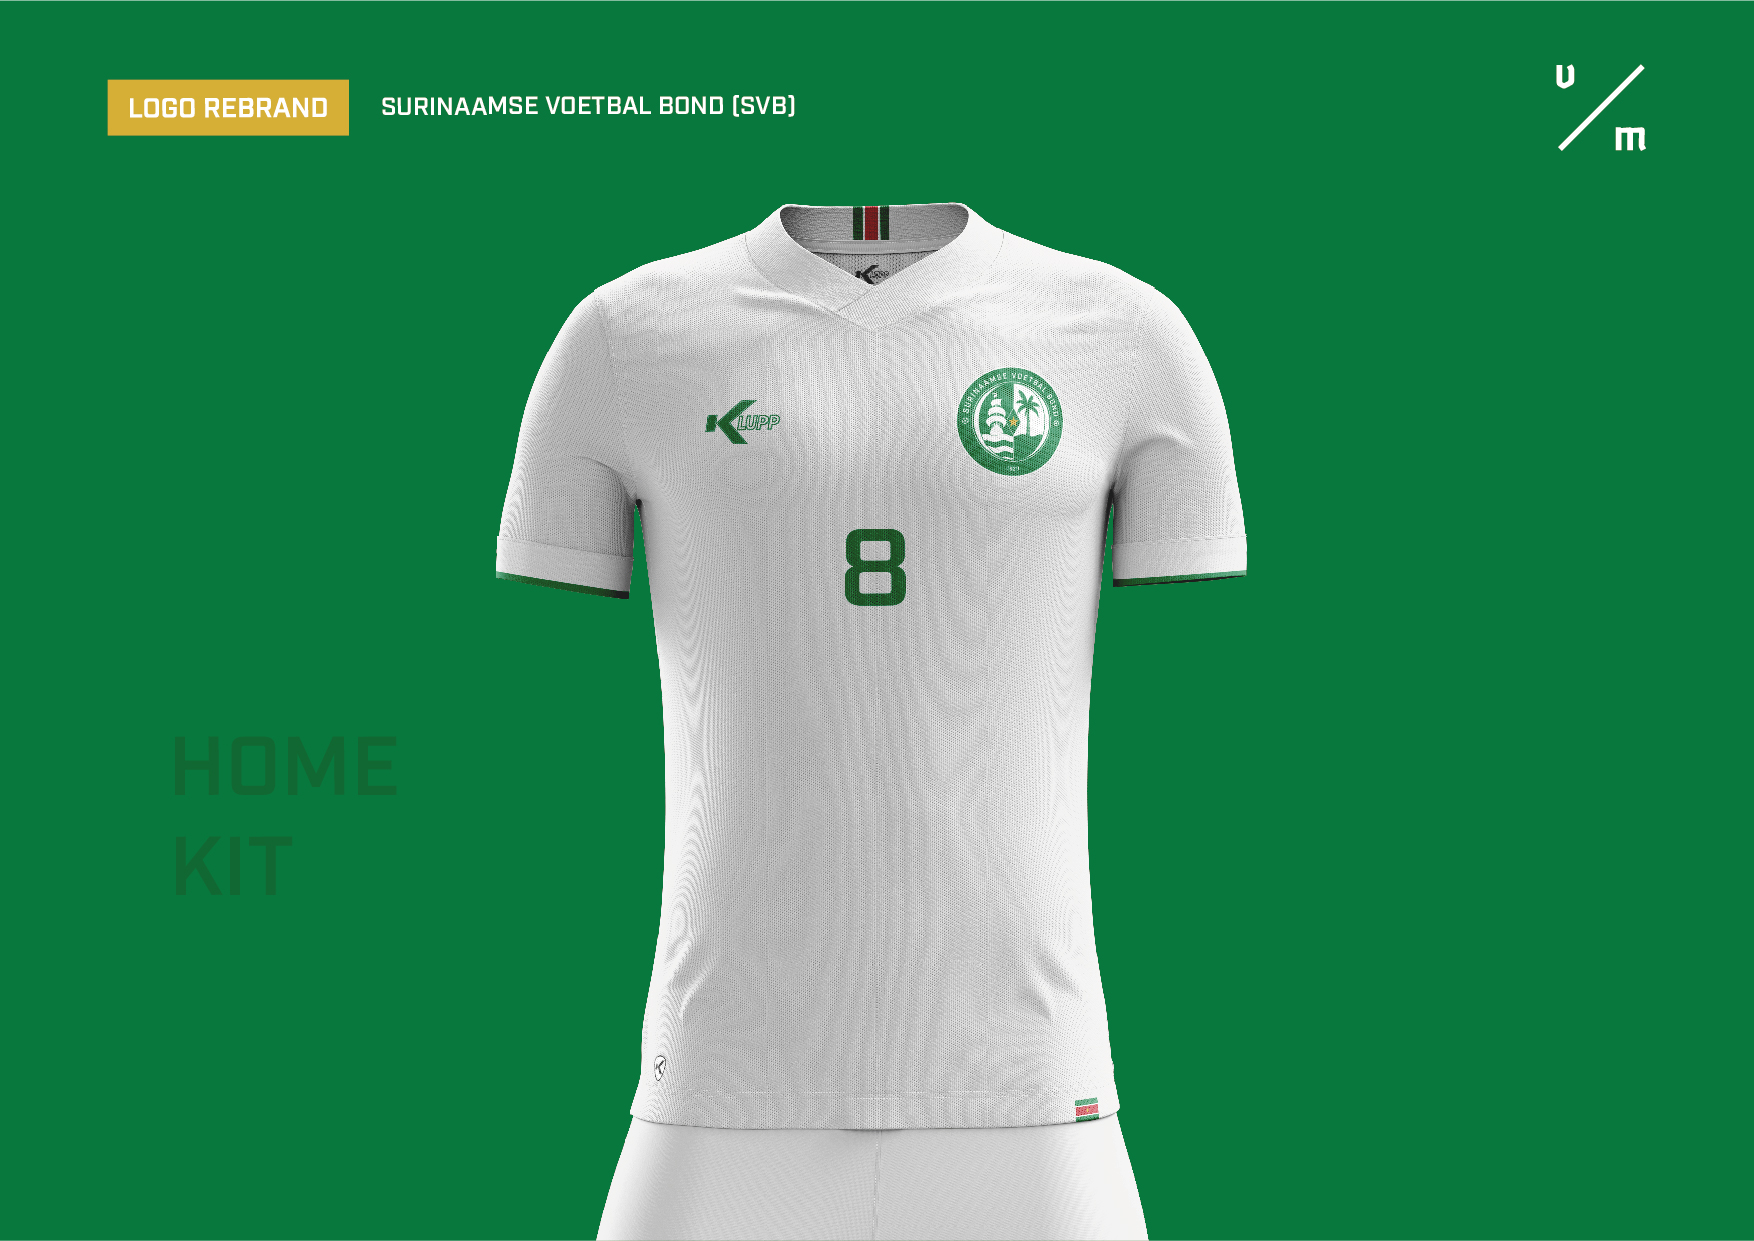 Surinaamse Voetbal Bond Home Kit Concept